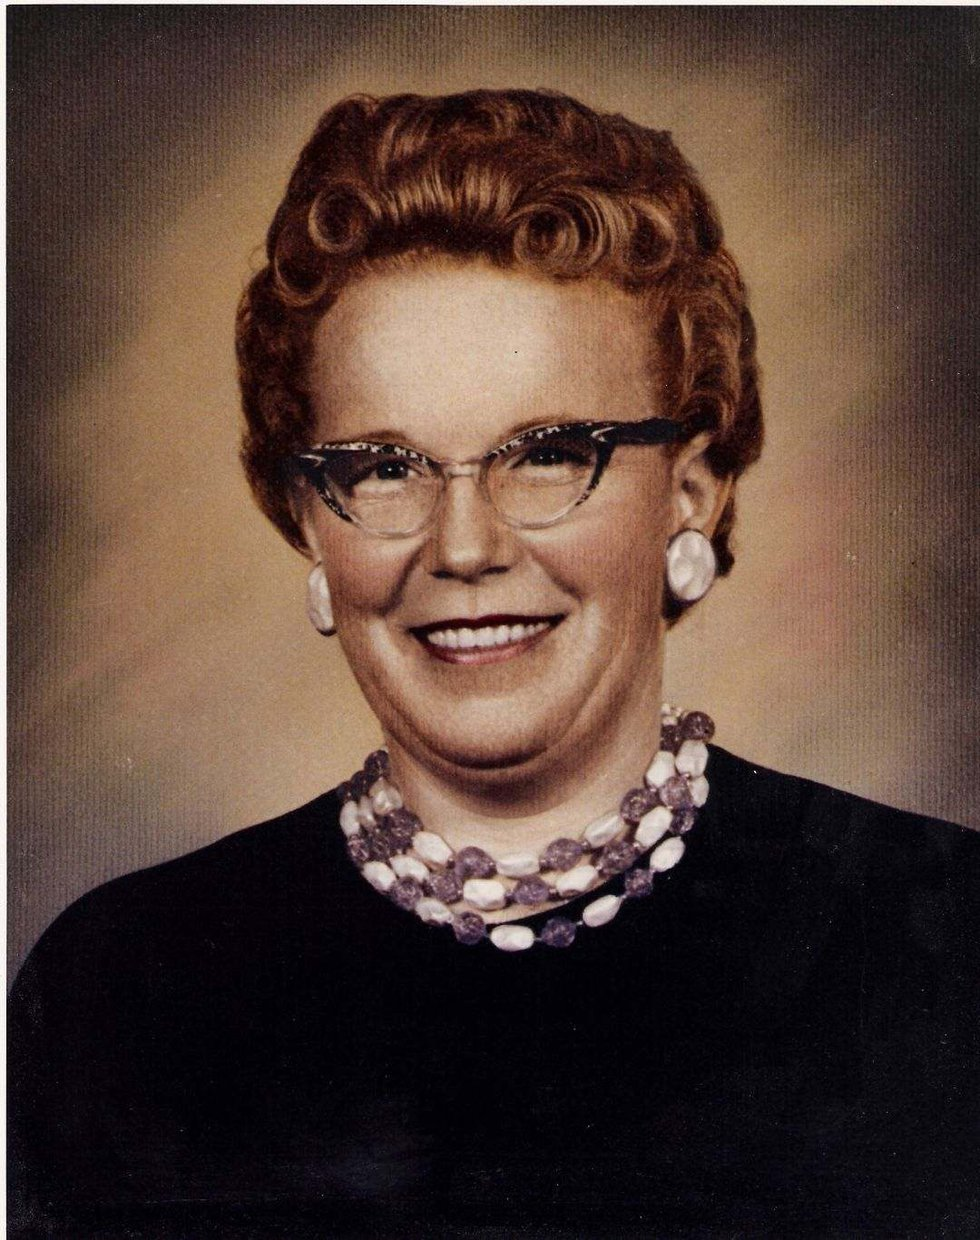 Frieda Wright, Marcy Brenum's mother, died in 1962 and at age 41